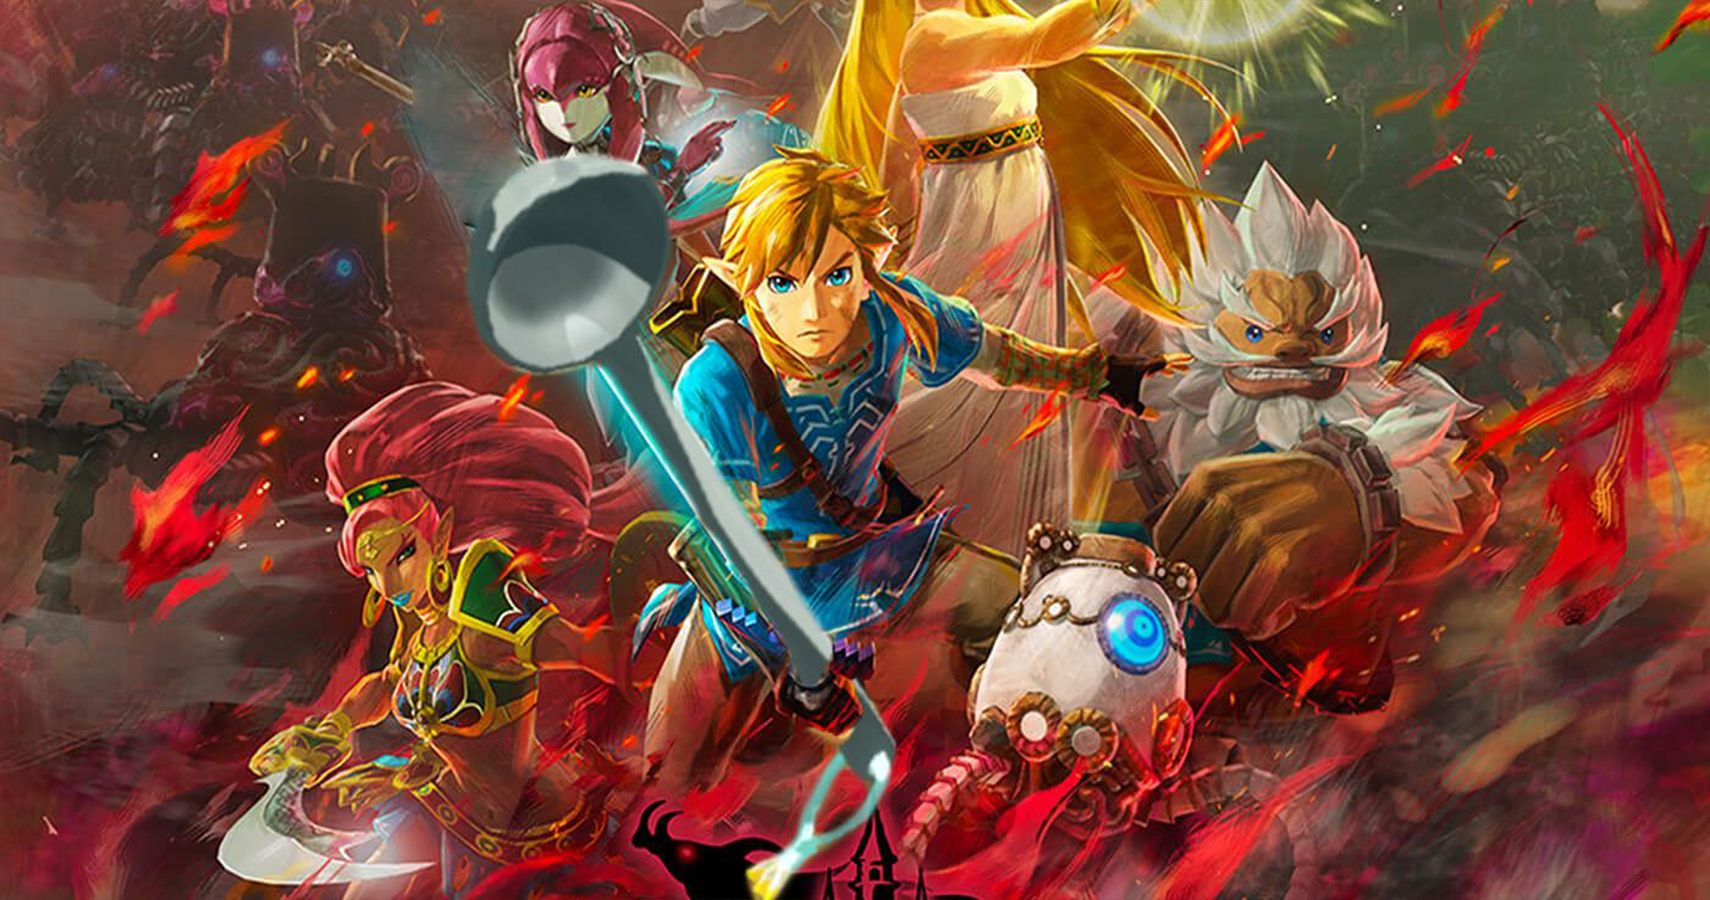 Hyrule Warriors  Age Of Calamity Datamine Reveals Playable Roster  Including Ganon  Impa  Hestu